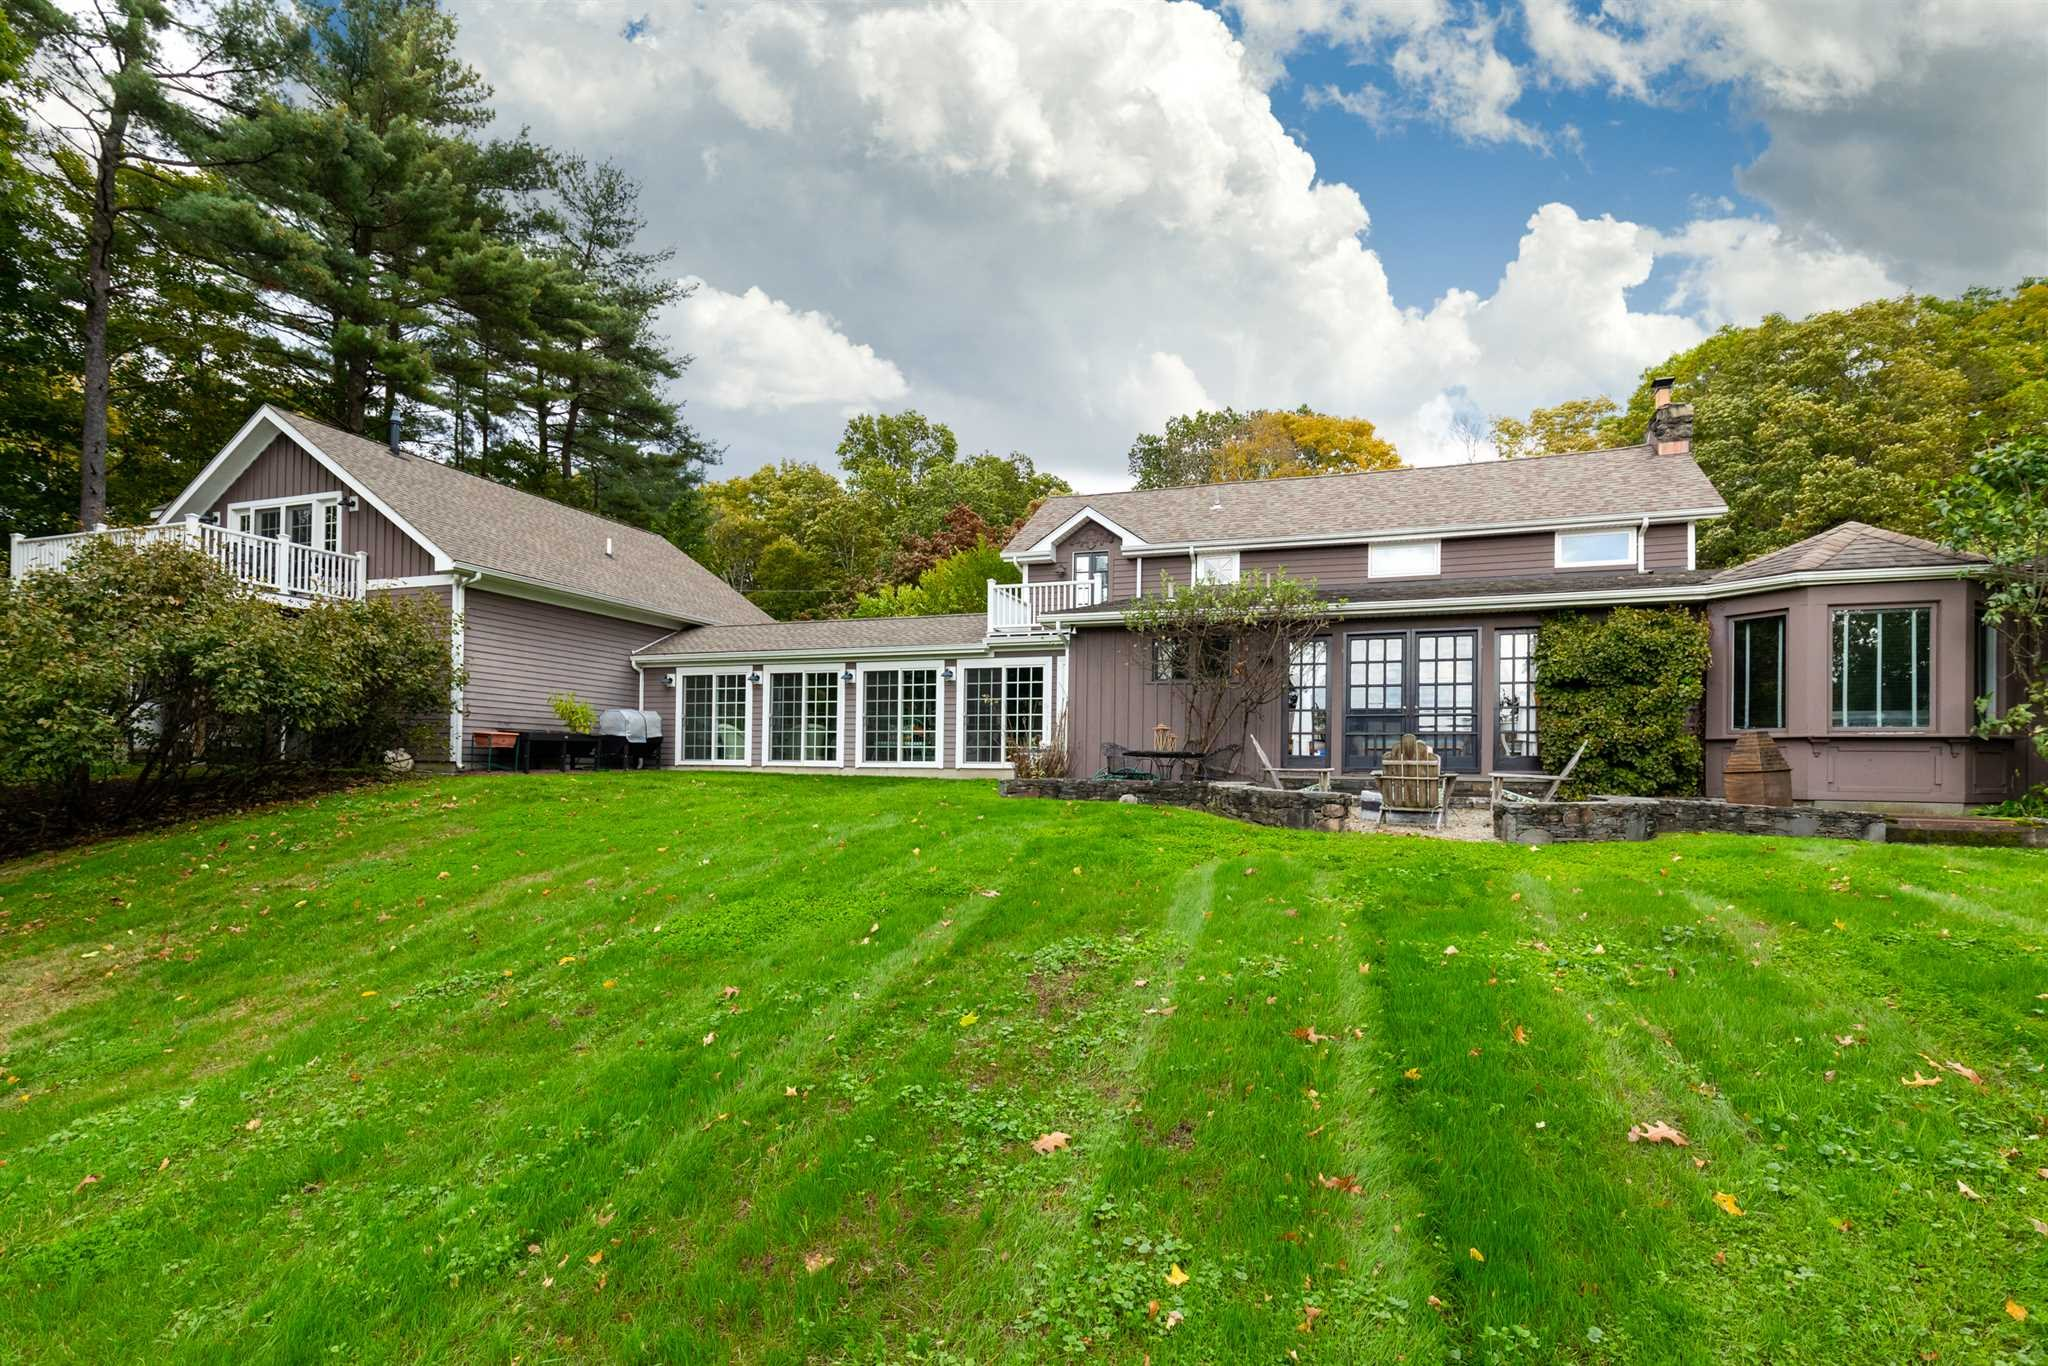 26 CURRY LANE Hyde Park, NY 12538 - MLS #: 373731